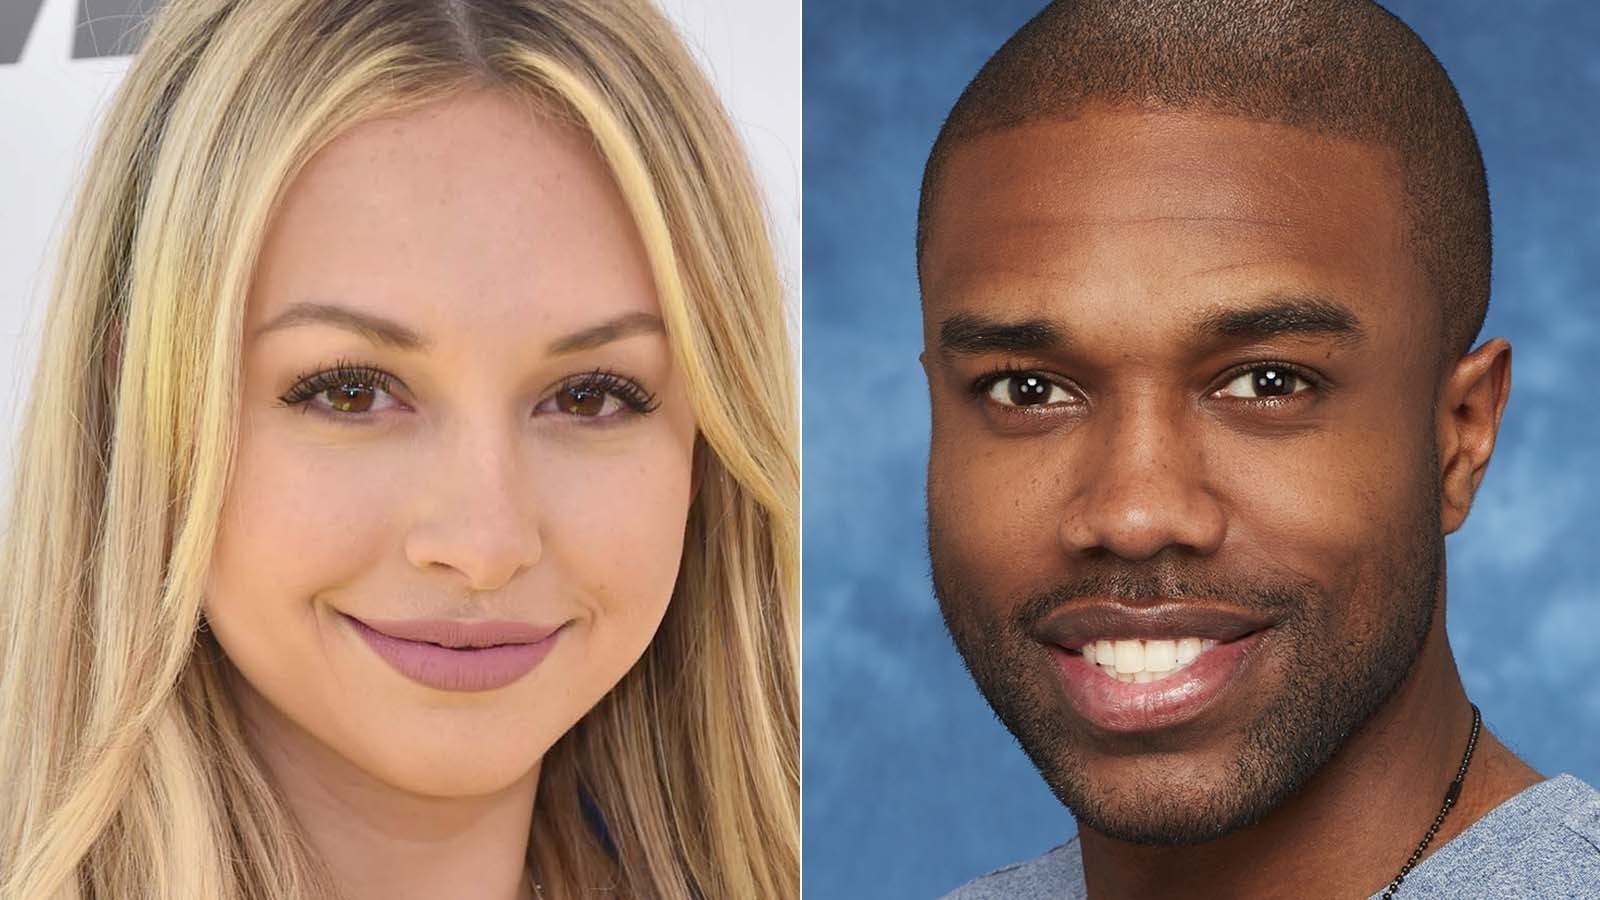 Corinne Olympios and DeMario Jackson. (Frazer Harrison / Getty Images, left; Craig Sjodin / ABC)